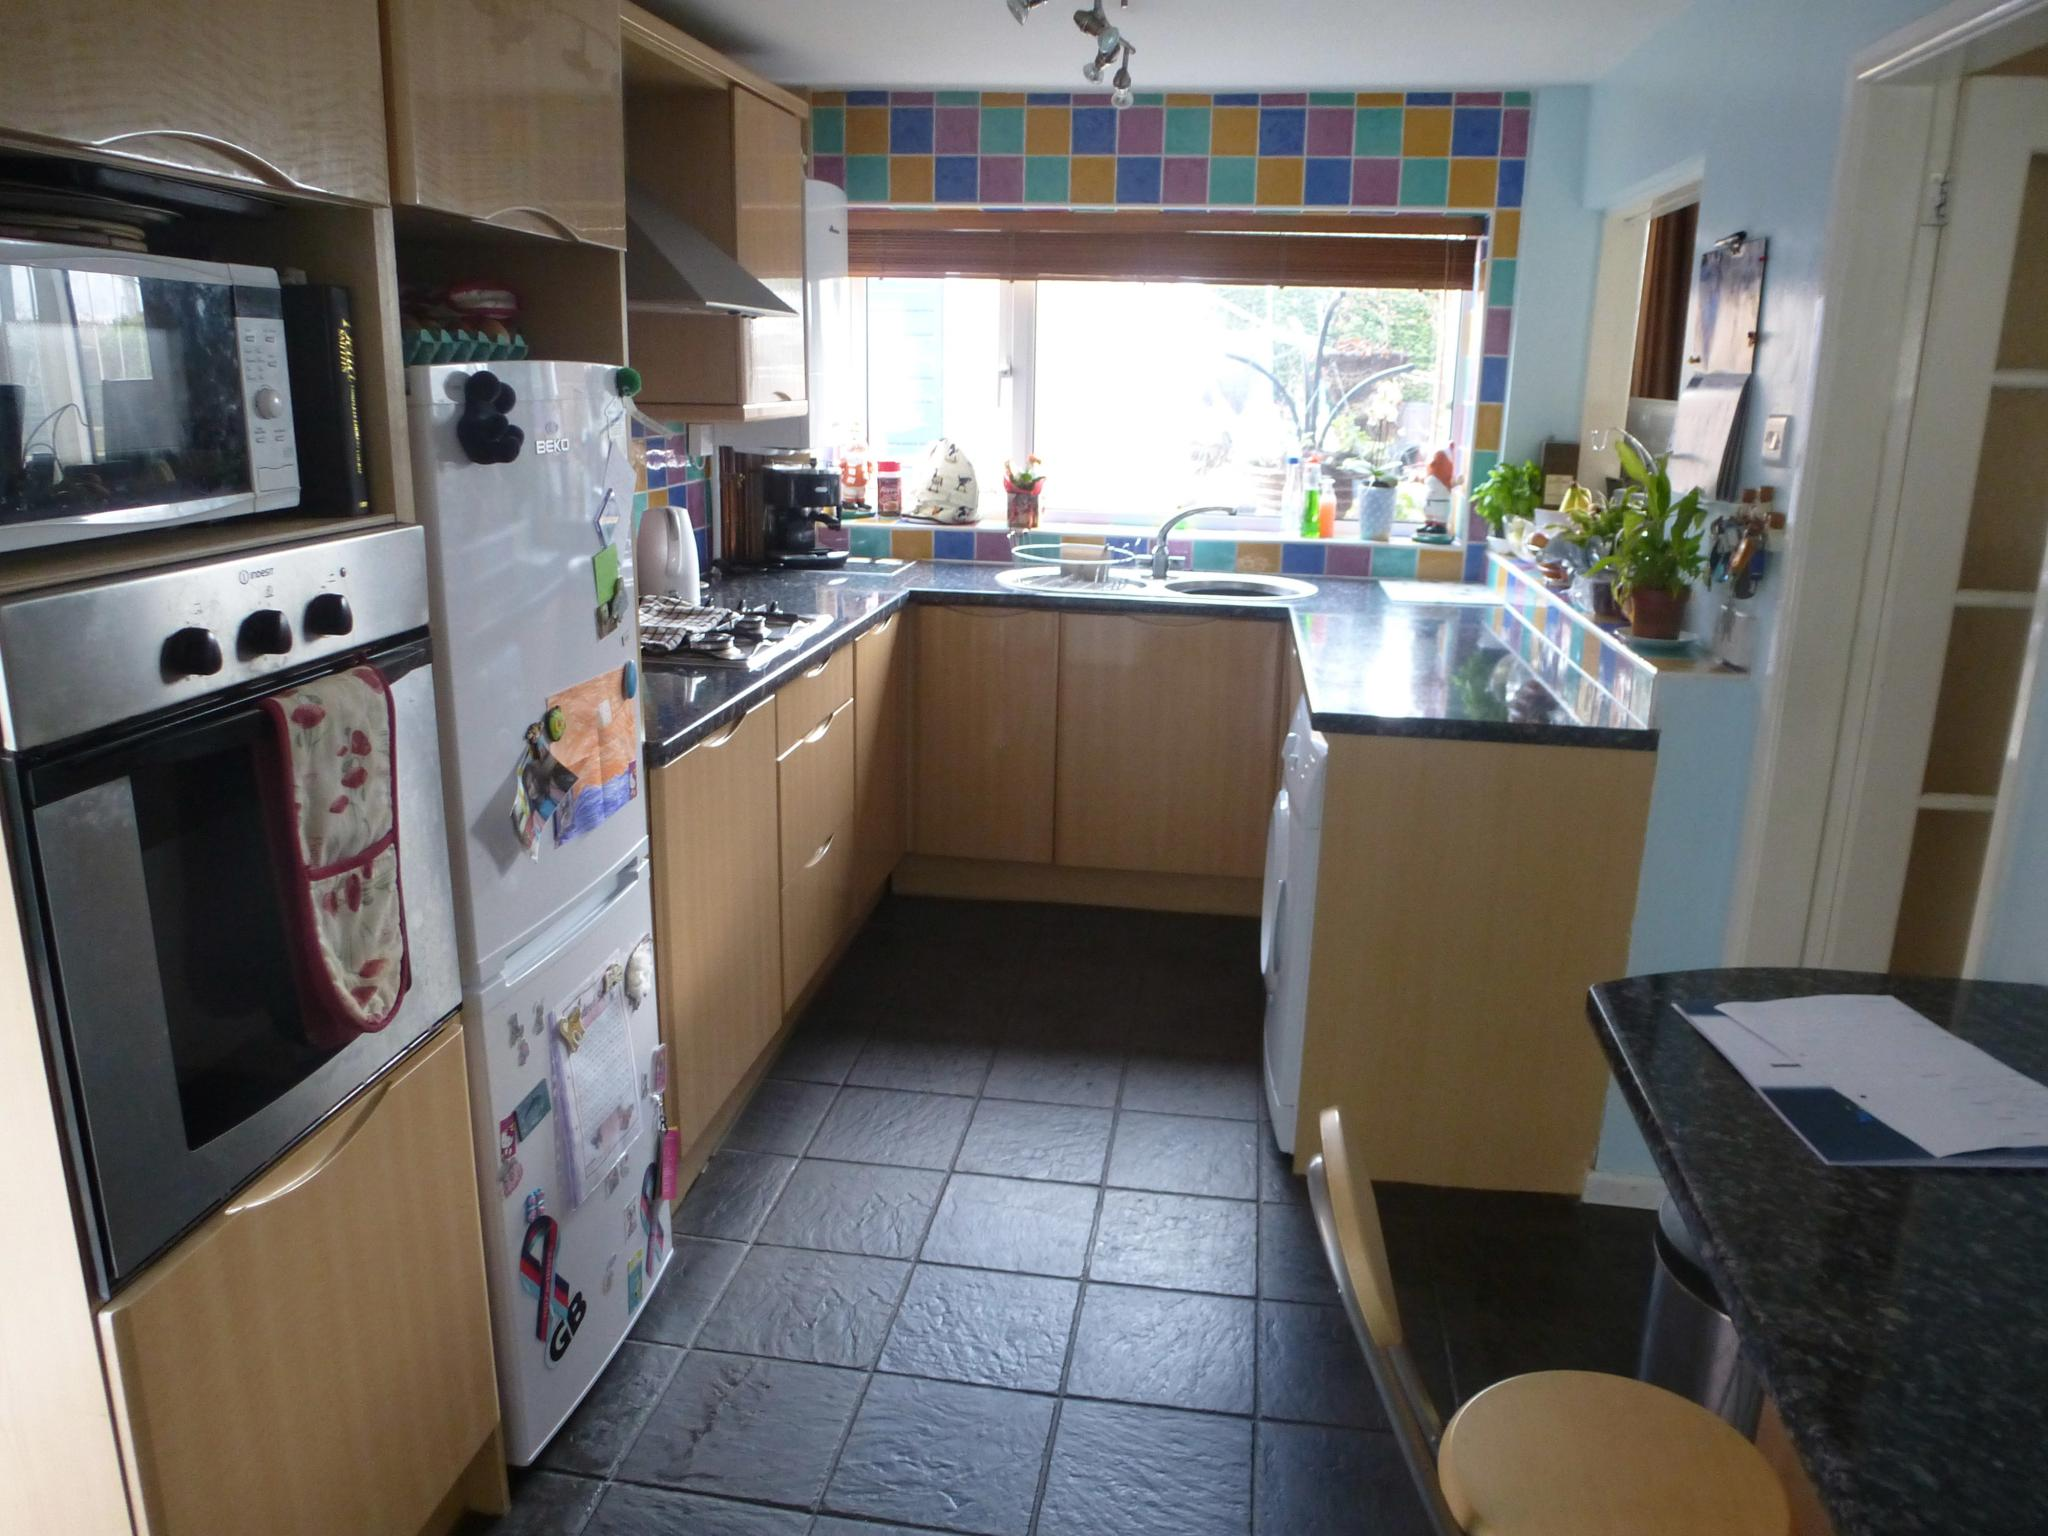 Image 1 of 2 of KITCHEN, on Accommodation Comprising for